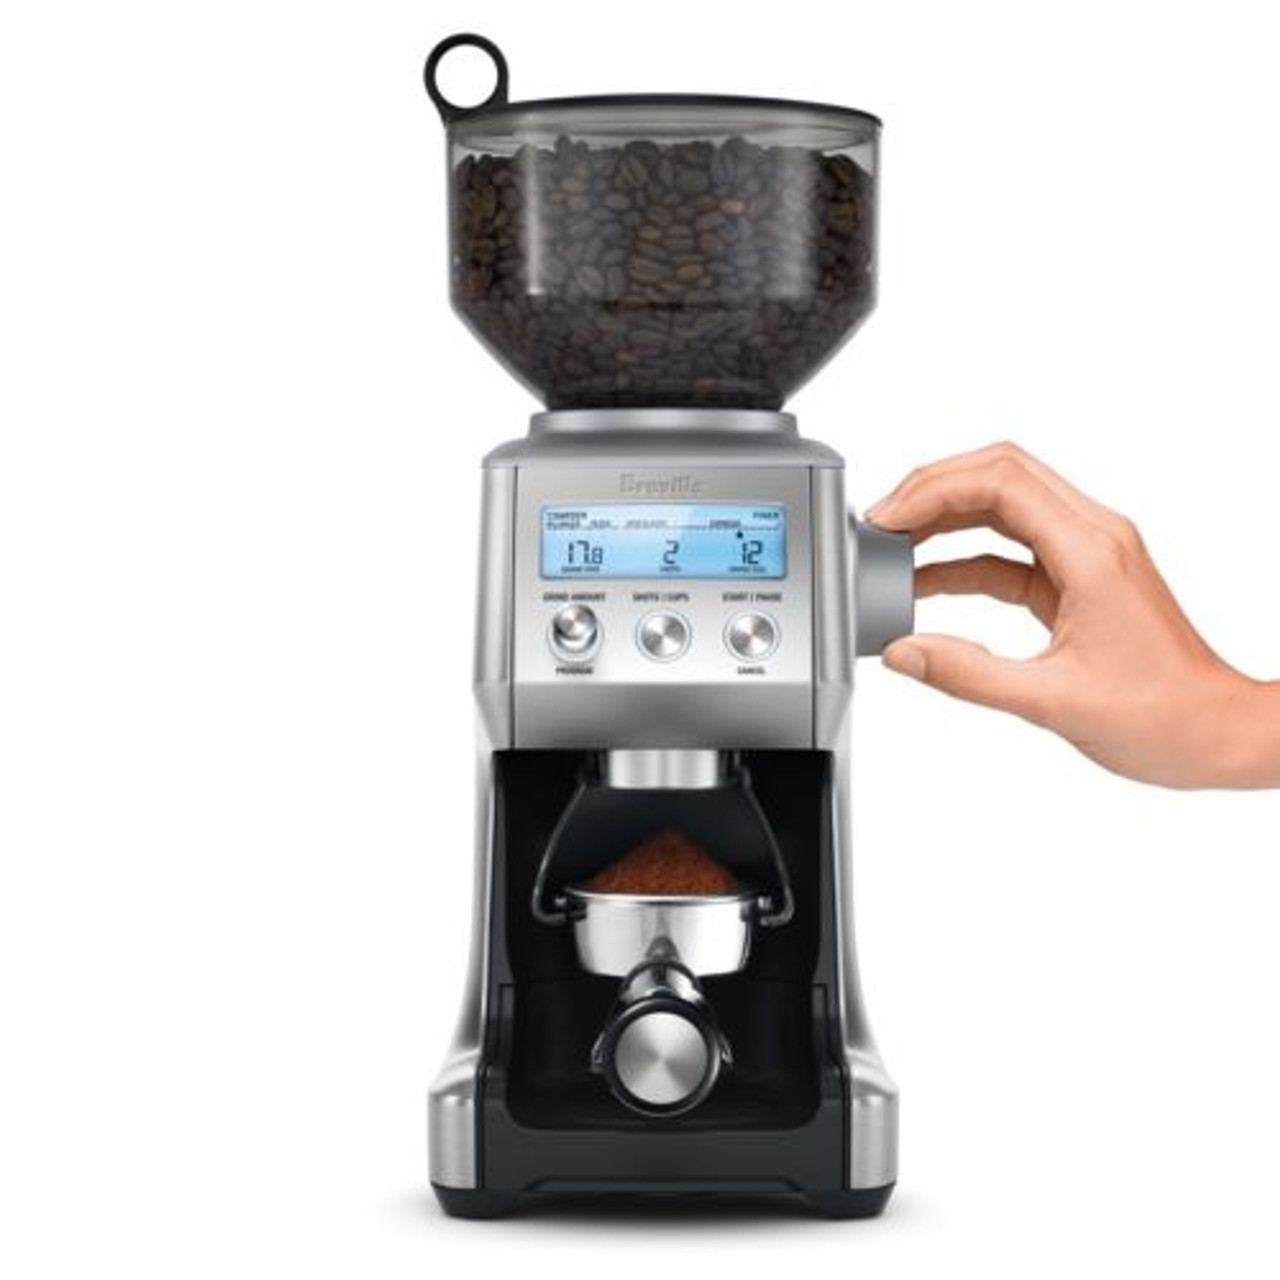 Breville BCG820BSS the Smart Grinder Pro 60 Setting Coffee Grinder